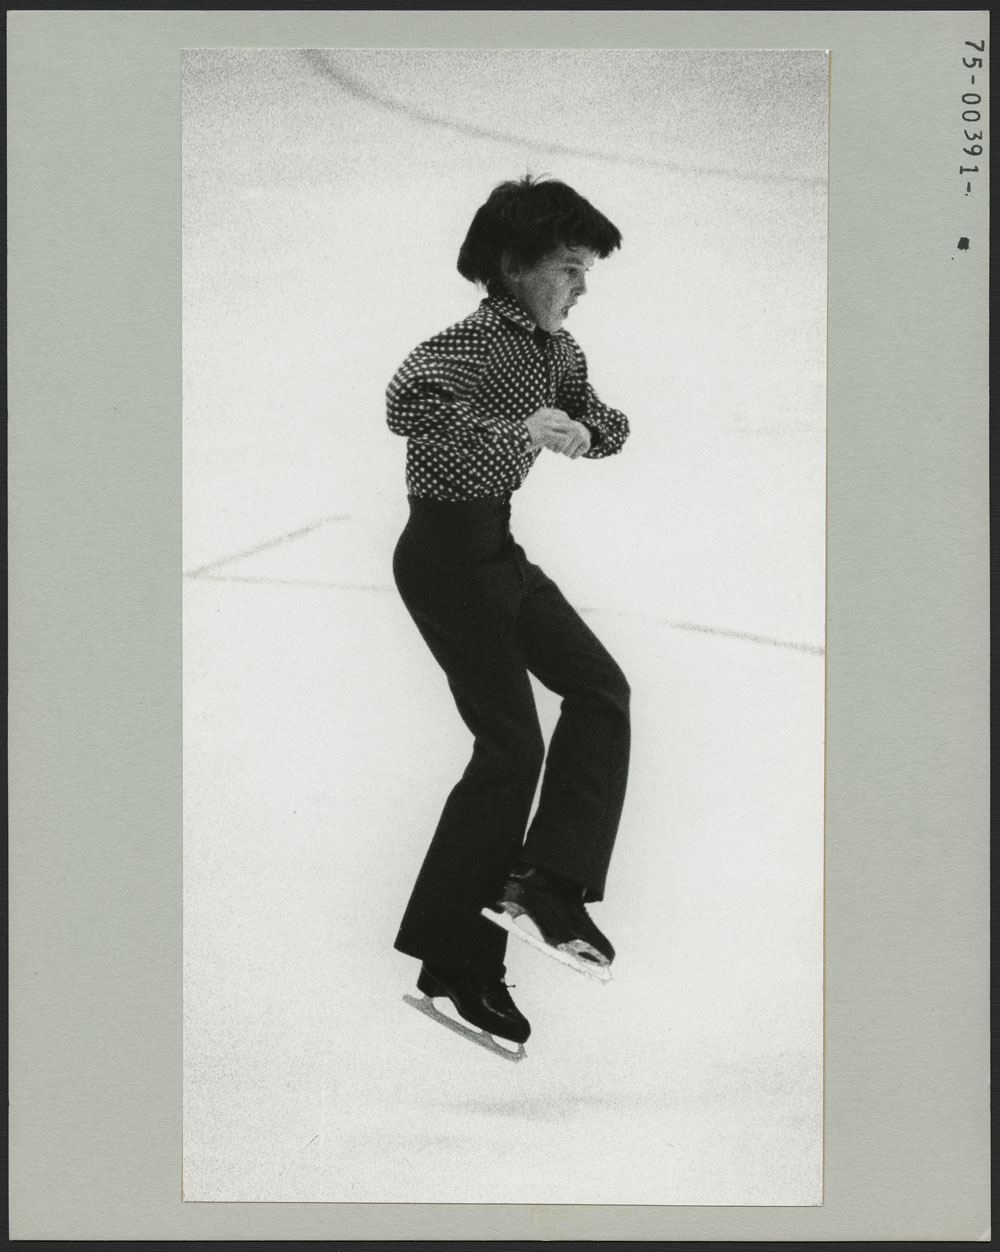 Brian Orser of Ontario, winner of the men's B single competition in figure skating at the 3rd Canadian Winter Games at Lethbridge, Alberta